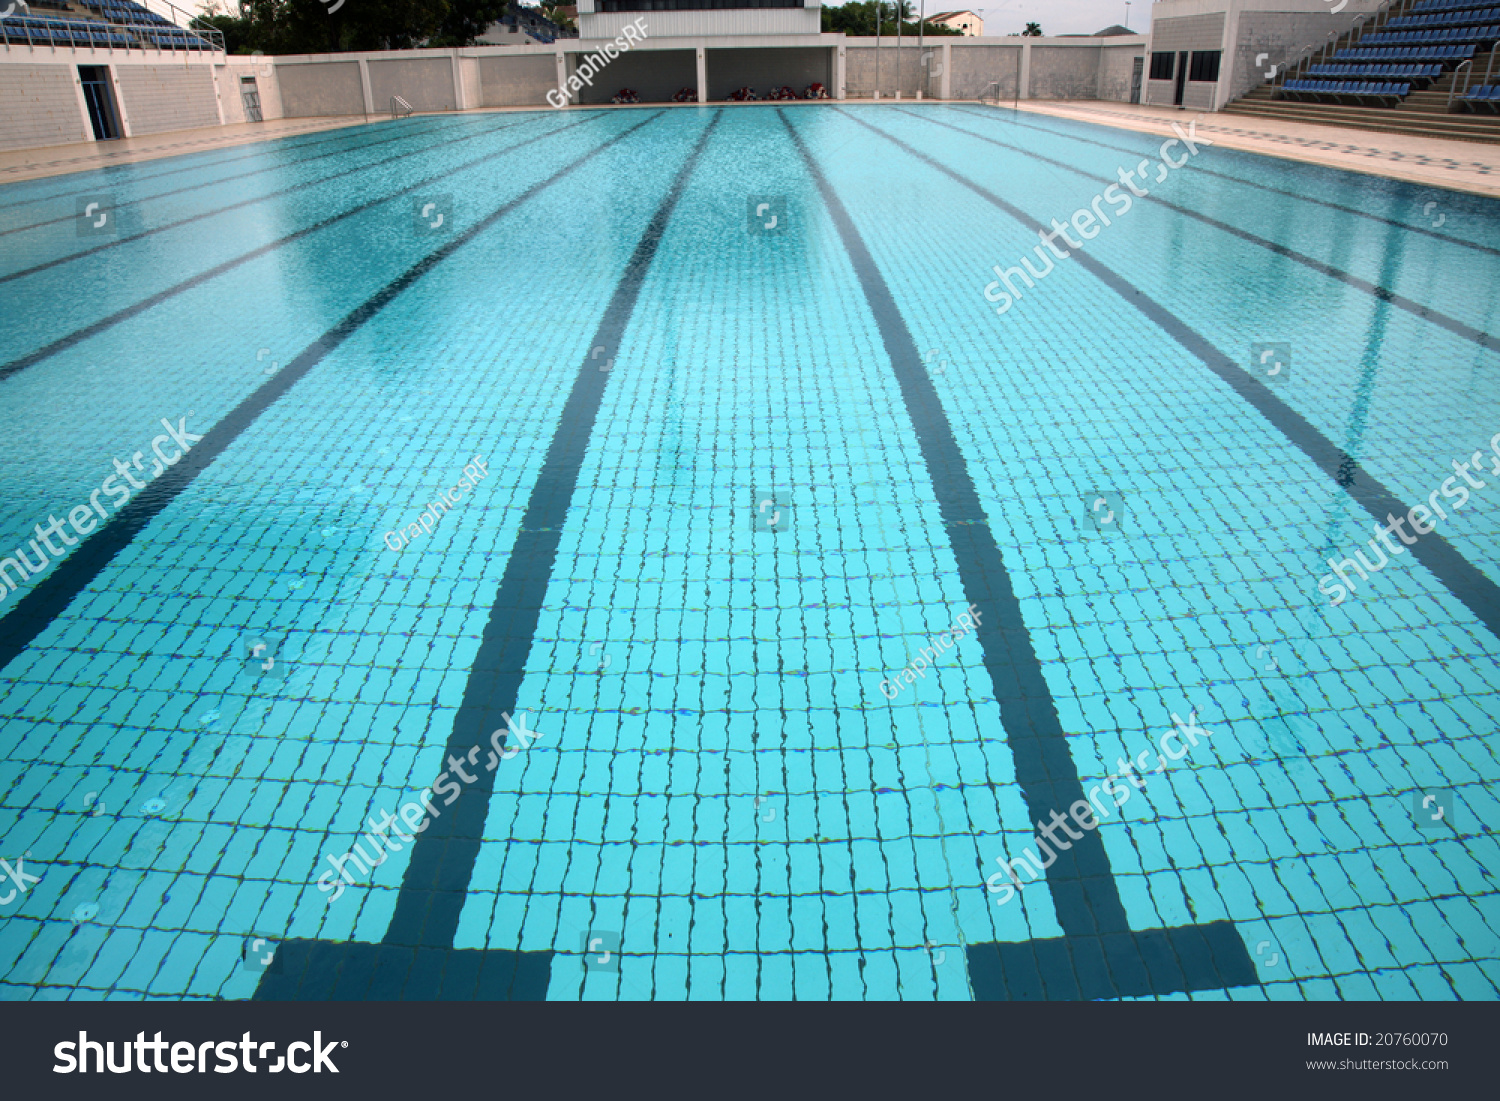 Swimming Pool Lane Markings Olympic Size Stock Photo 20760070 Shutterstock